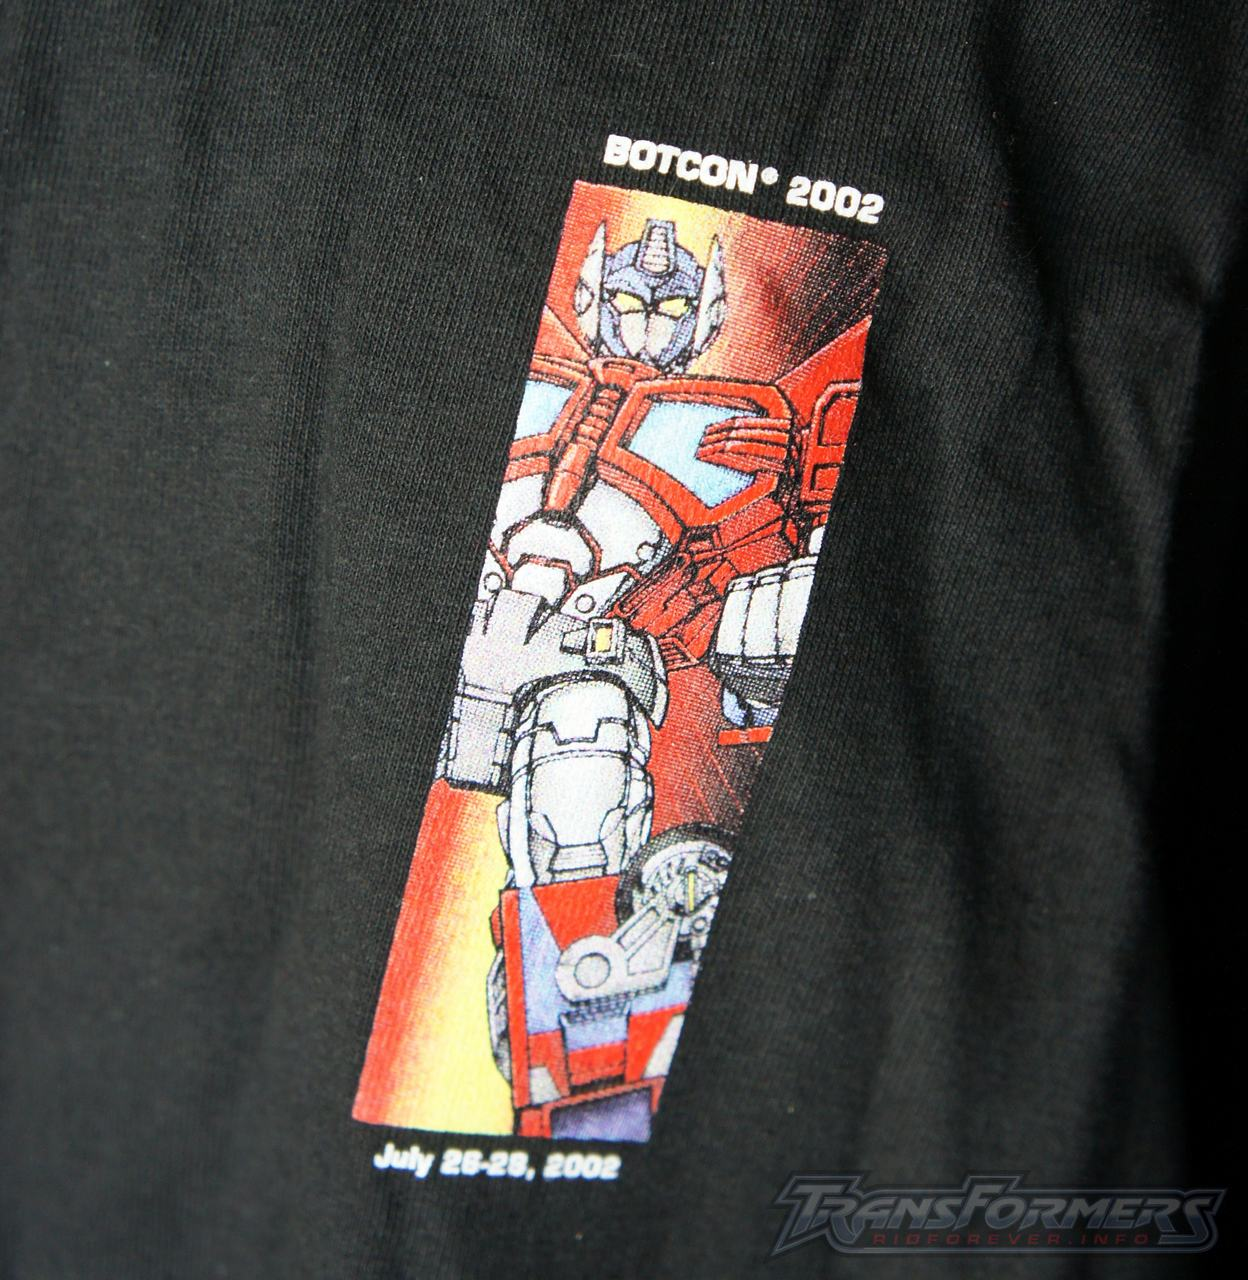 Botcon 2002 Shirt 002